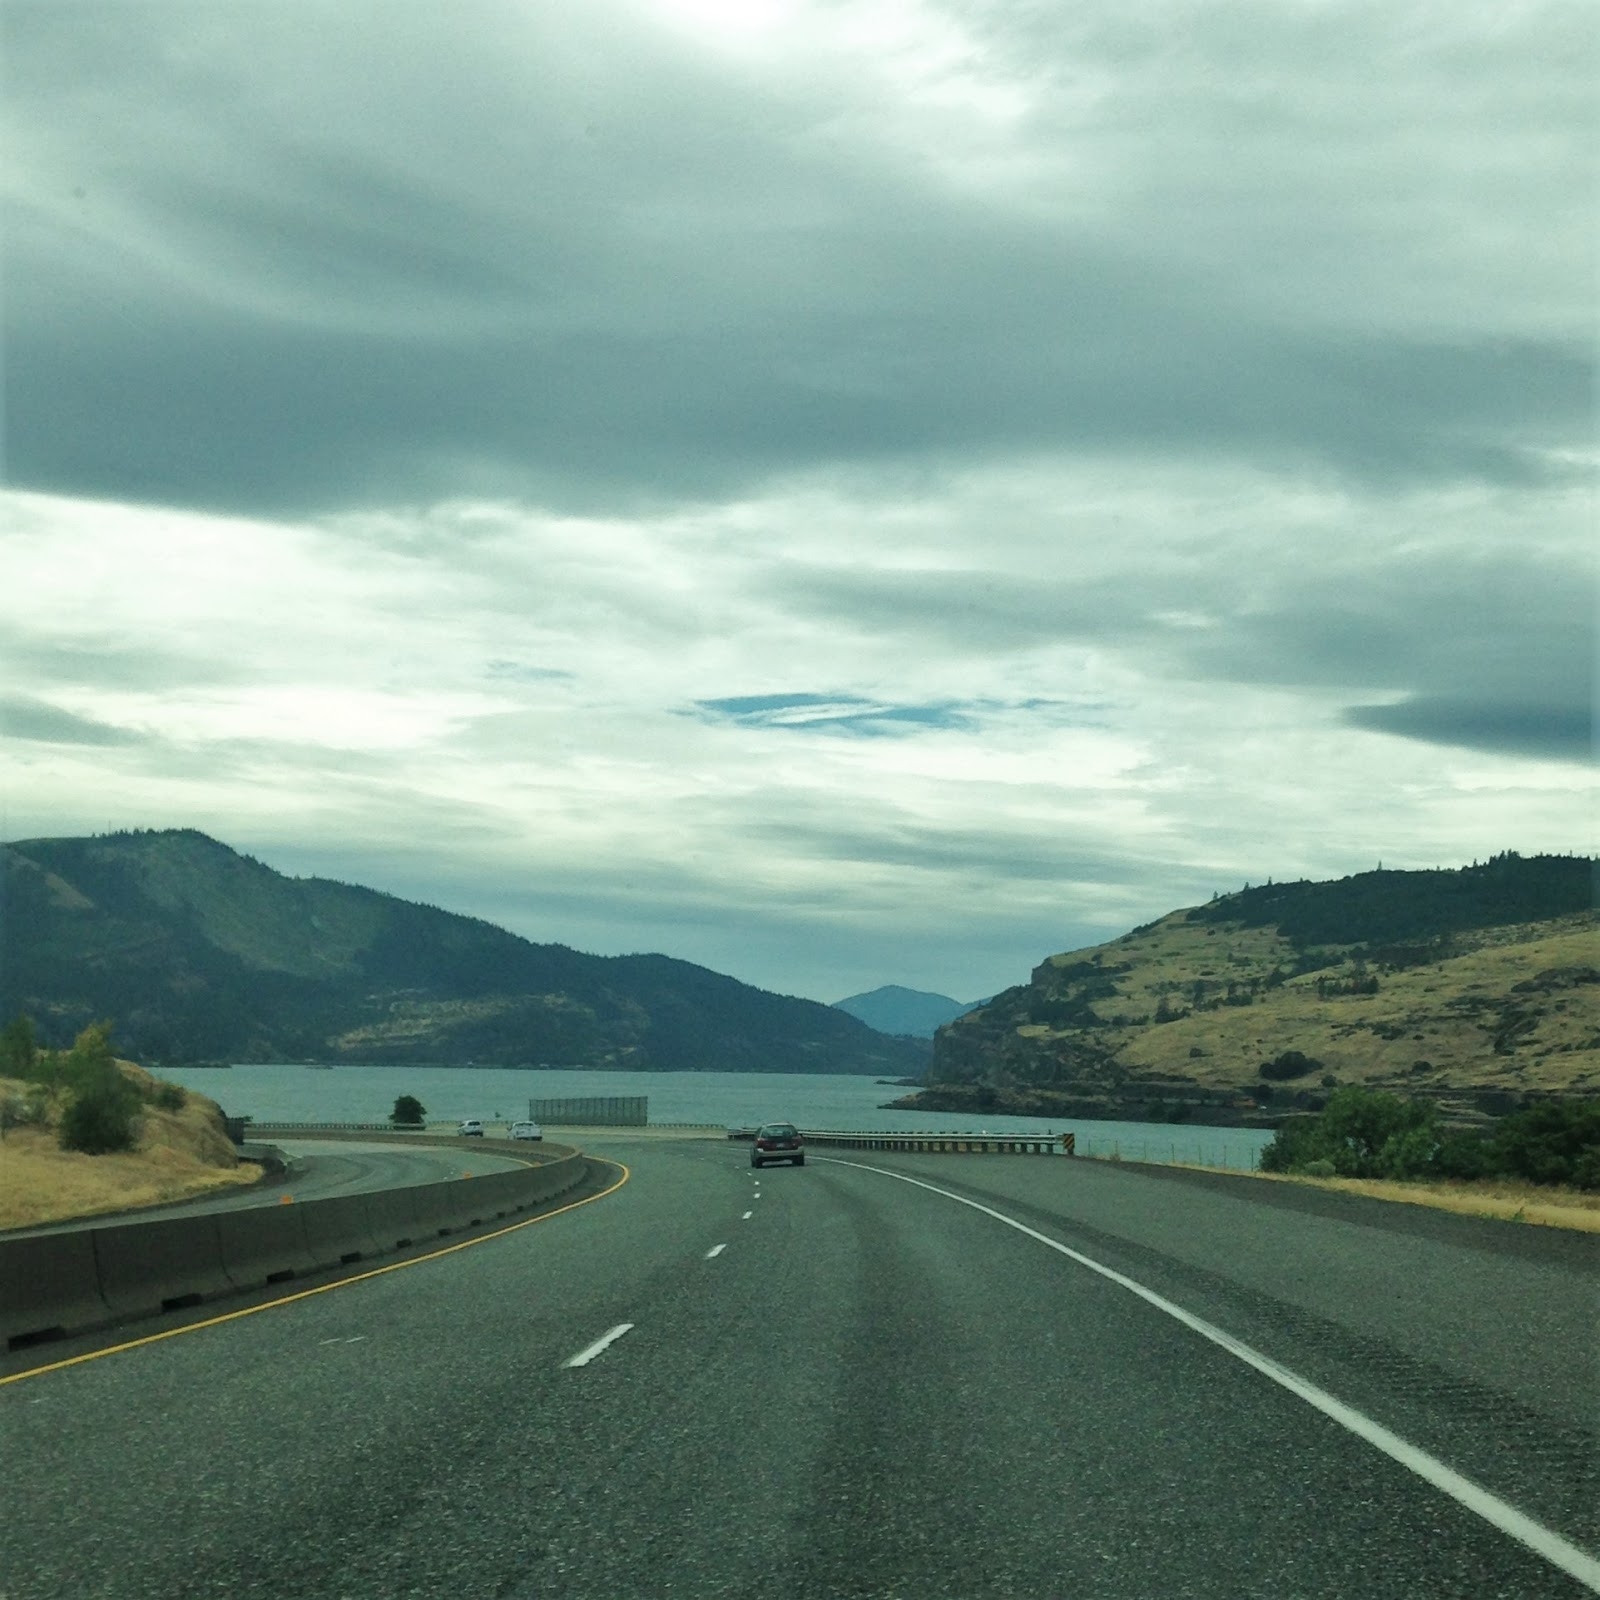 Seattle to hood river our 2016 family road trip born and read in chicago for Hood river swimming pool hours